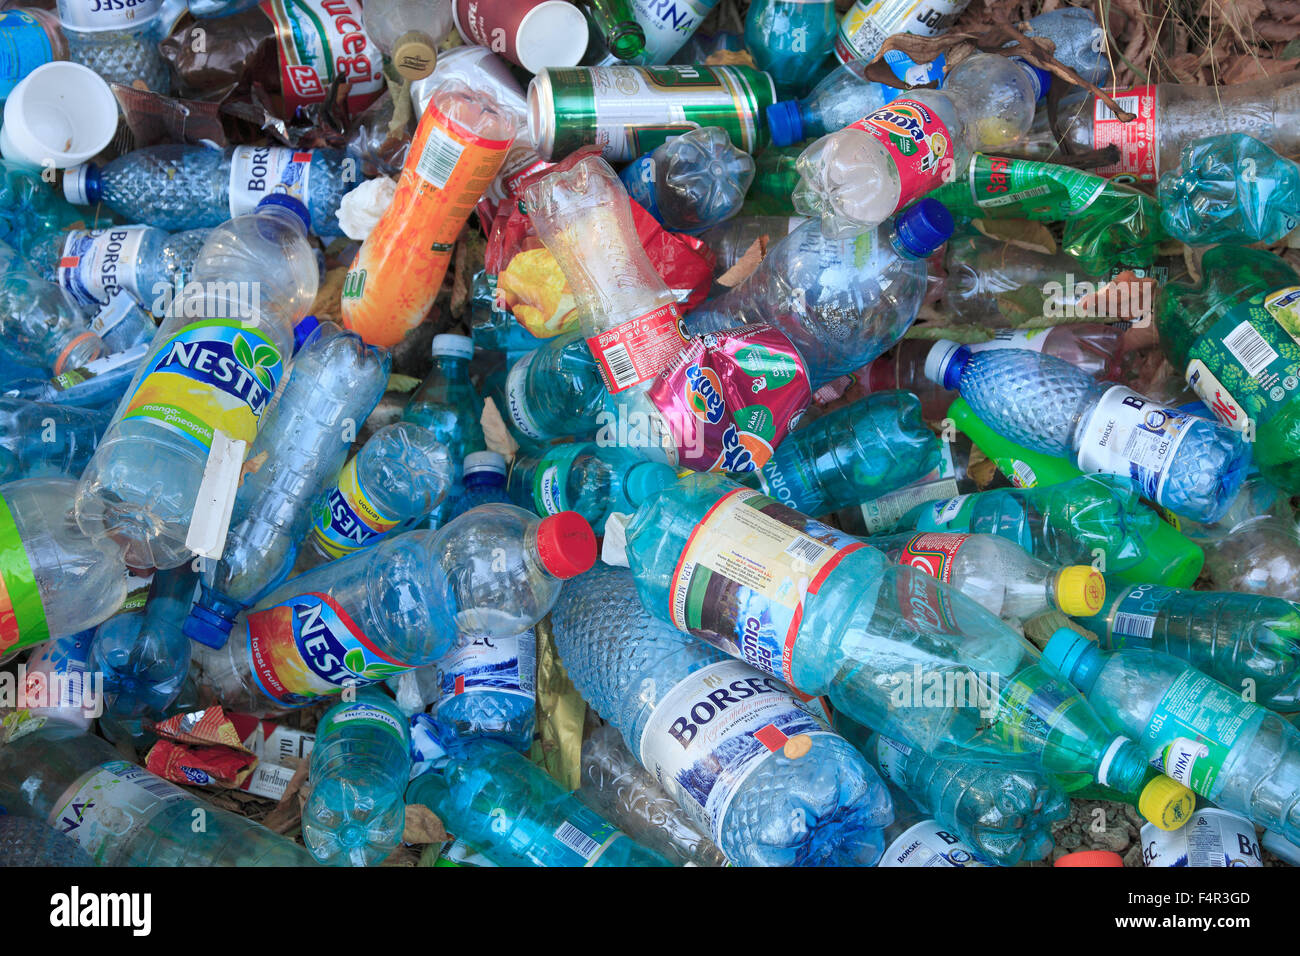 Plastic bottles pollution illegal waste disposal stock for Useful things from waste bottles